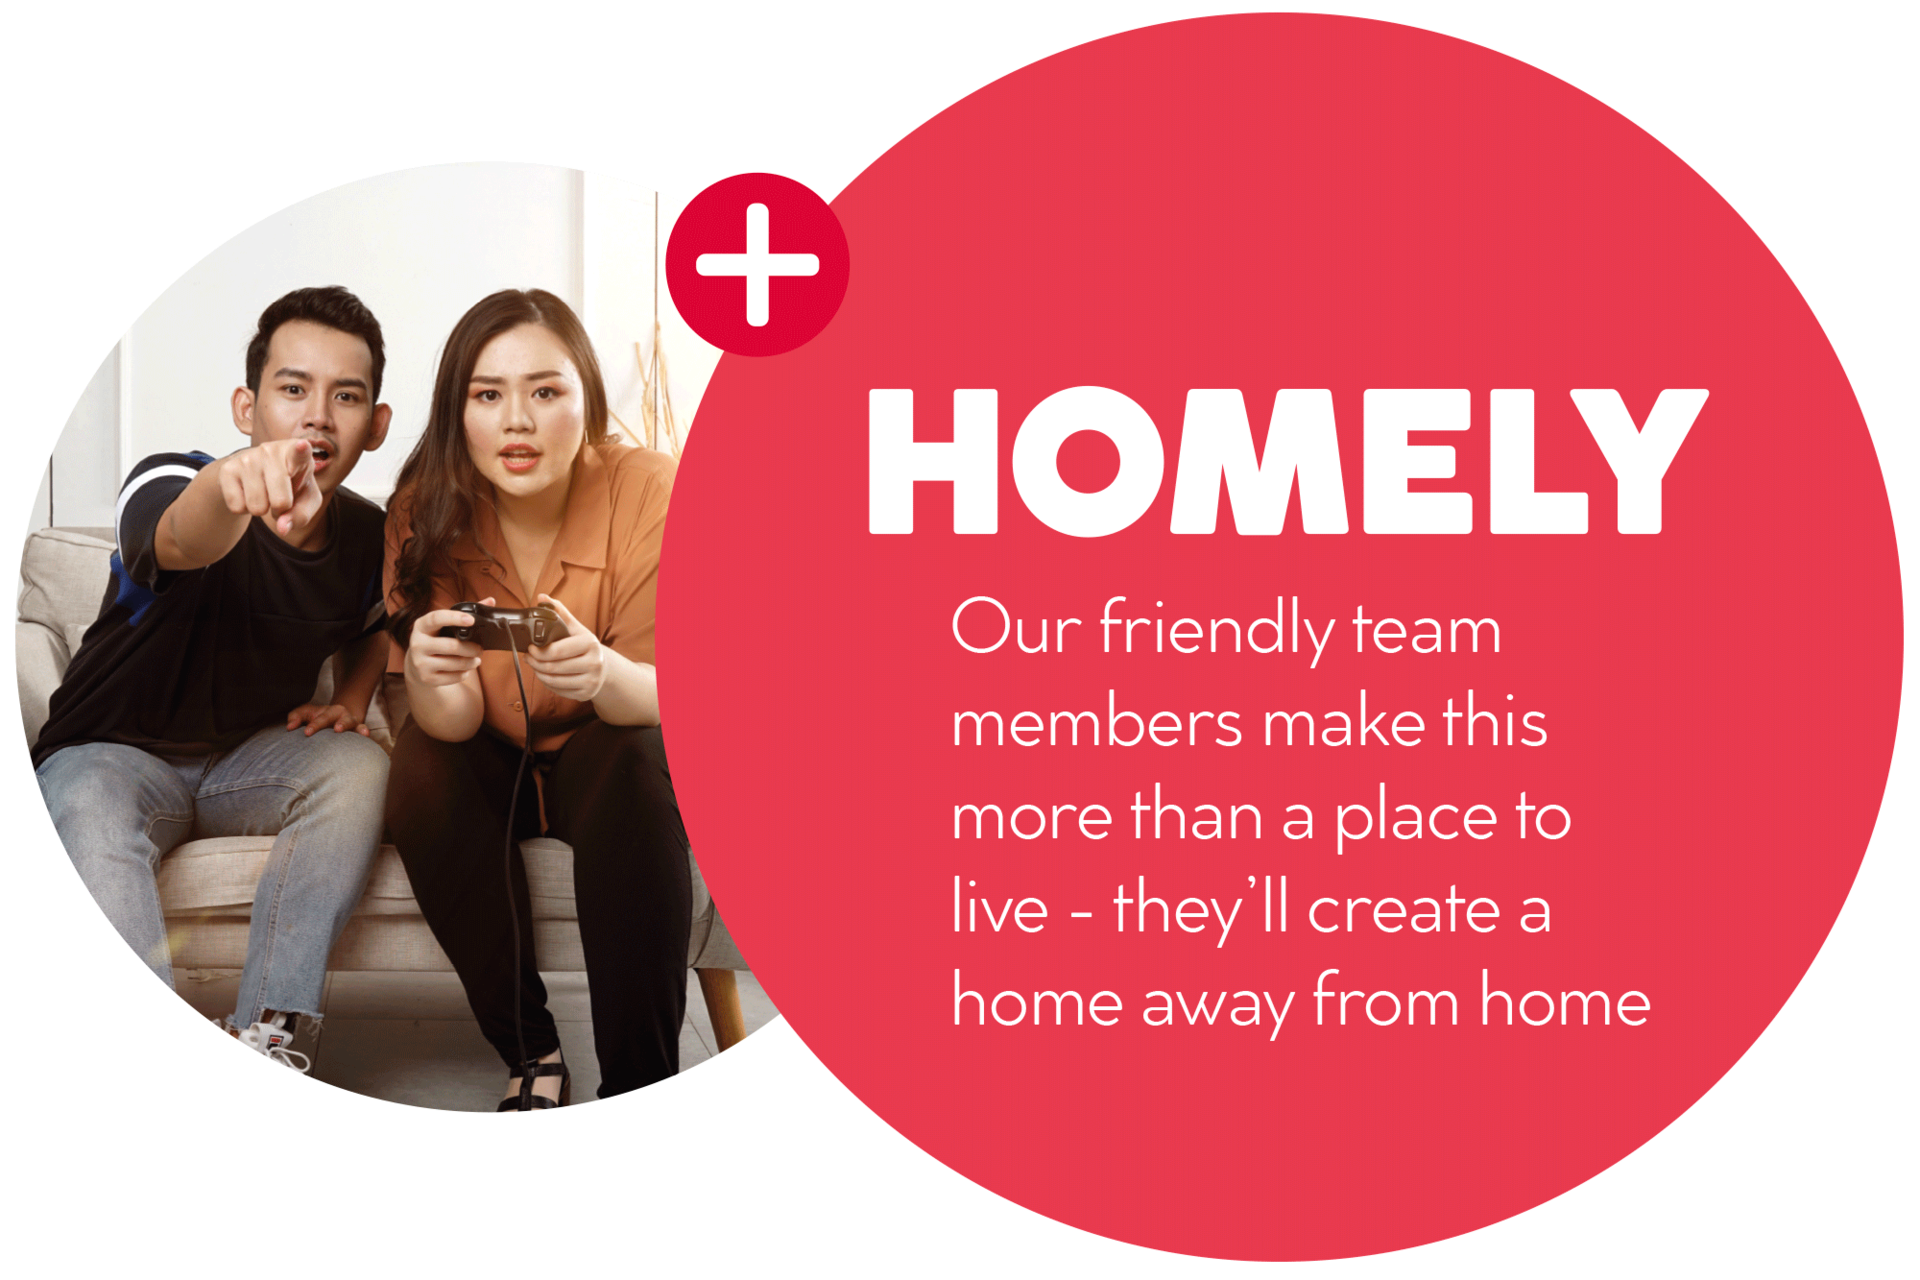 Homely - Our friendly team members make this more than a place to live - they'll create a home away from home